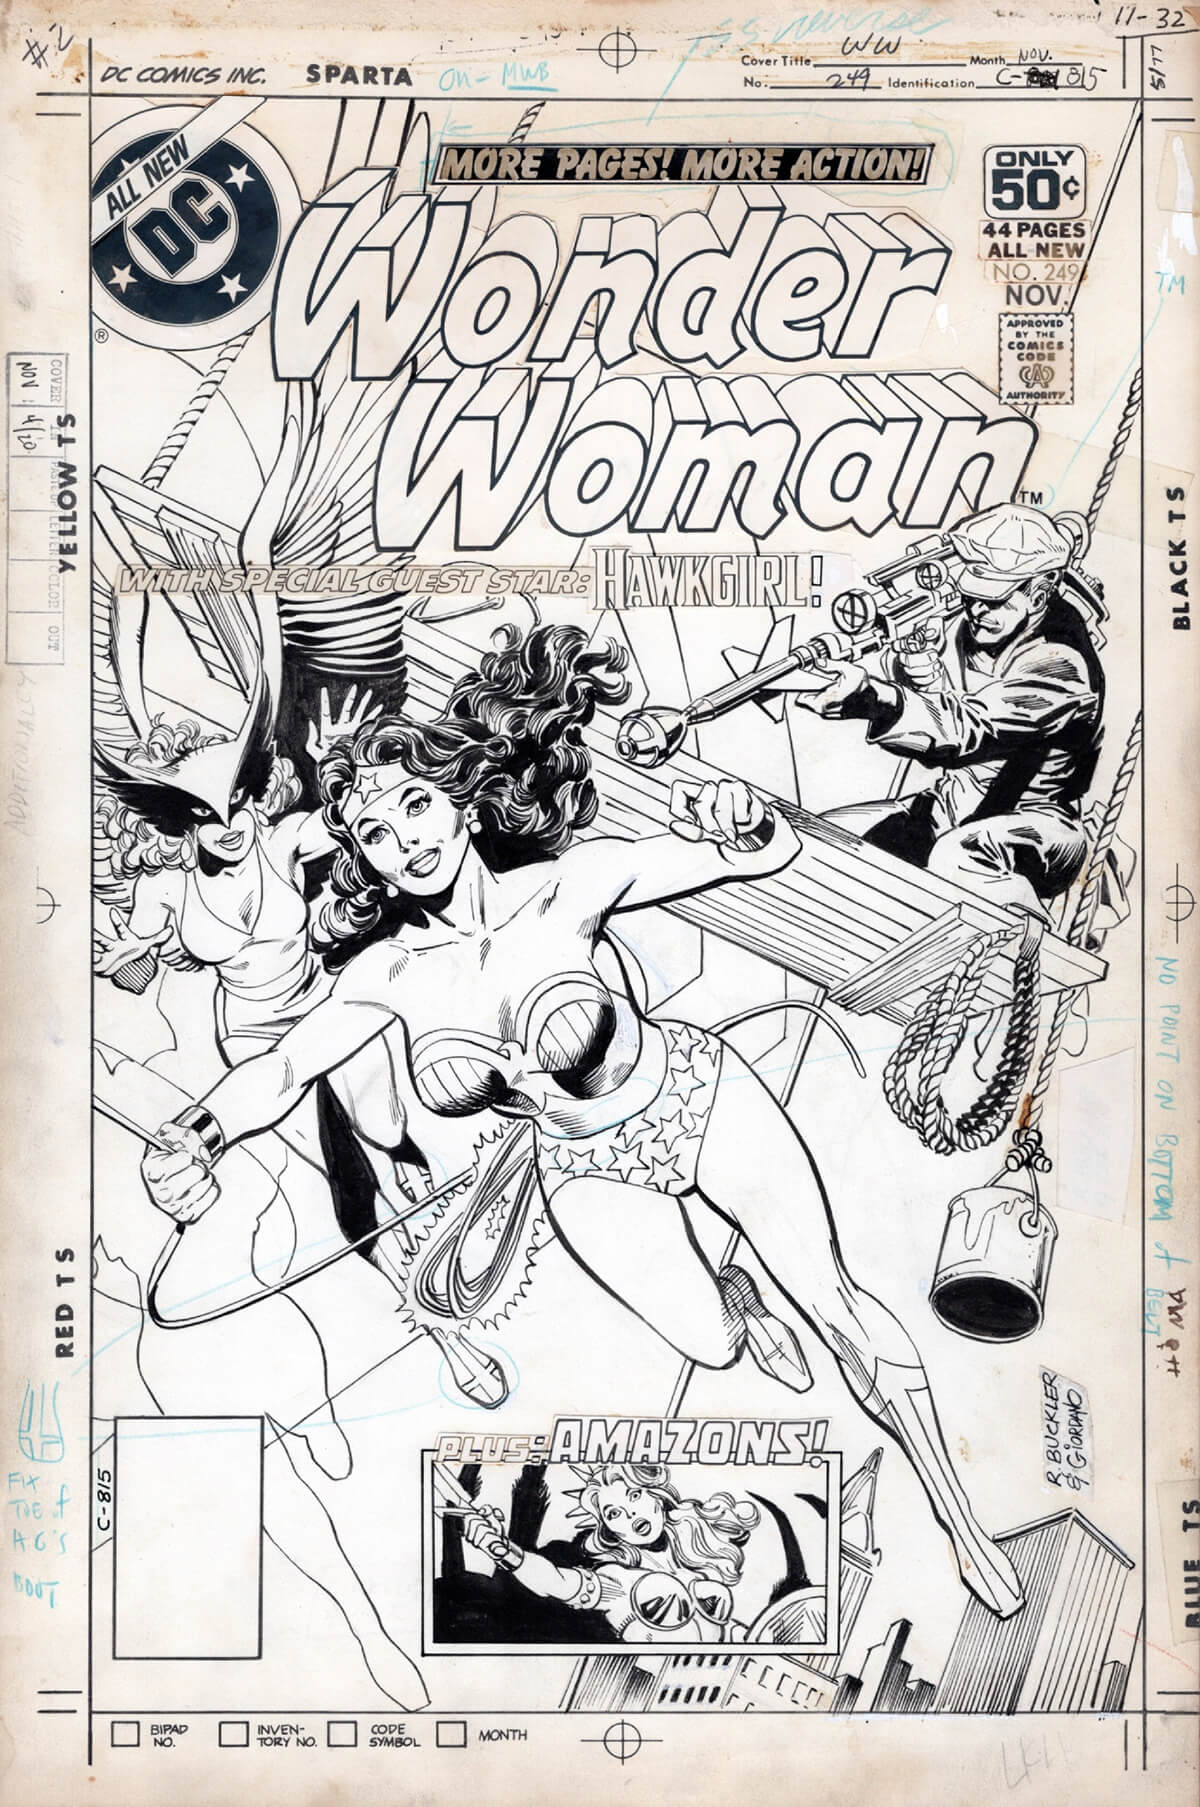 Wonder Woman 249 art by Rich Buckler and Dick Giordano